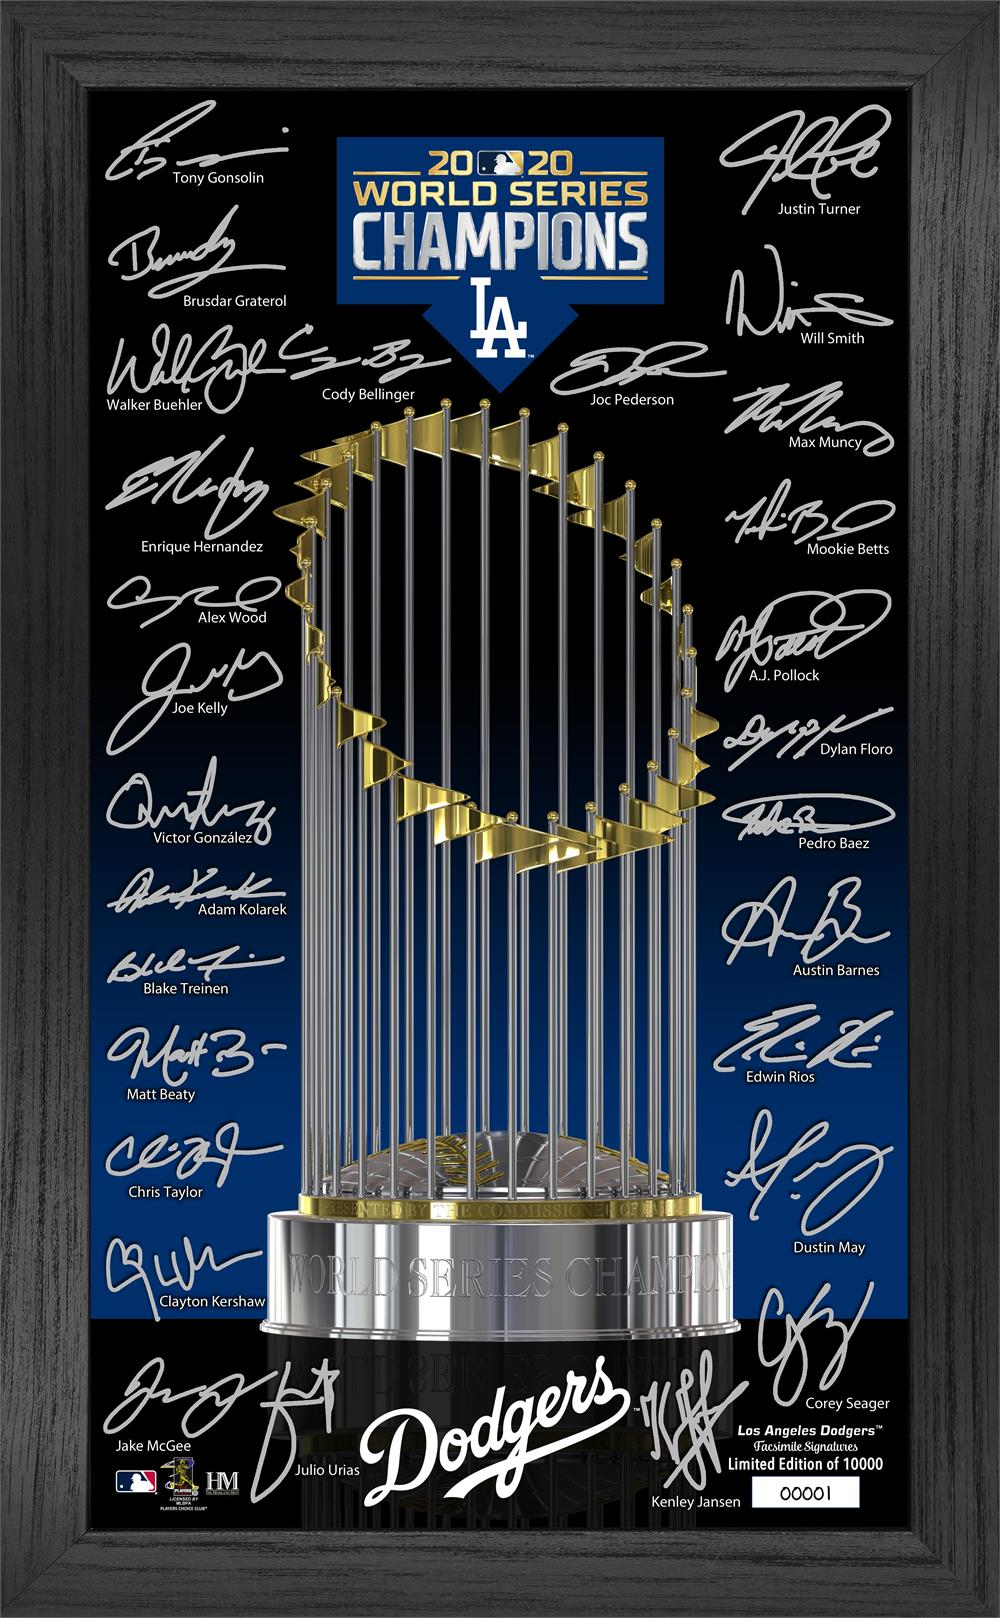 Los Angeles Dodgers 2020 World Series Champions Signature Trophy